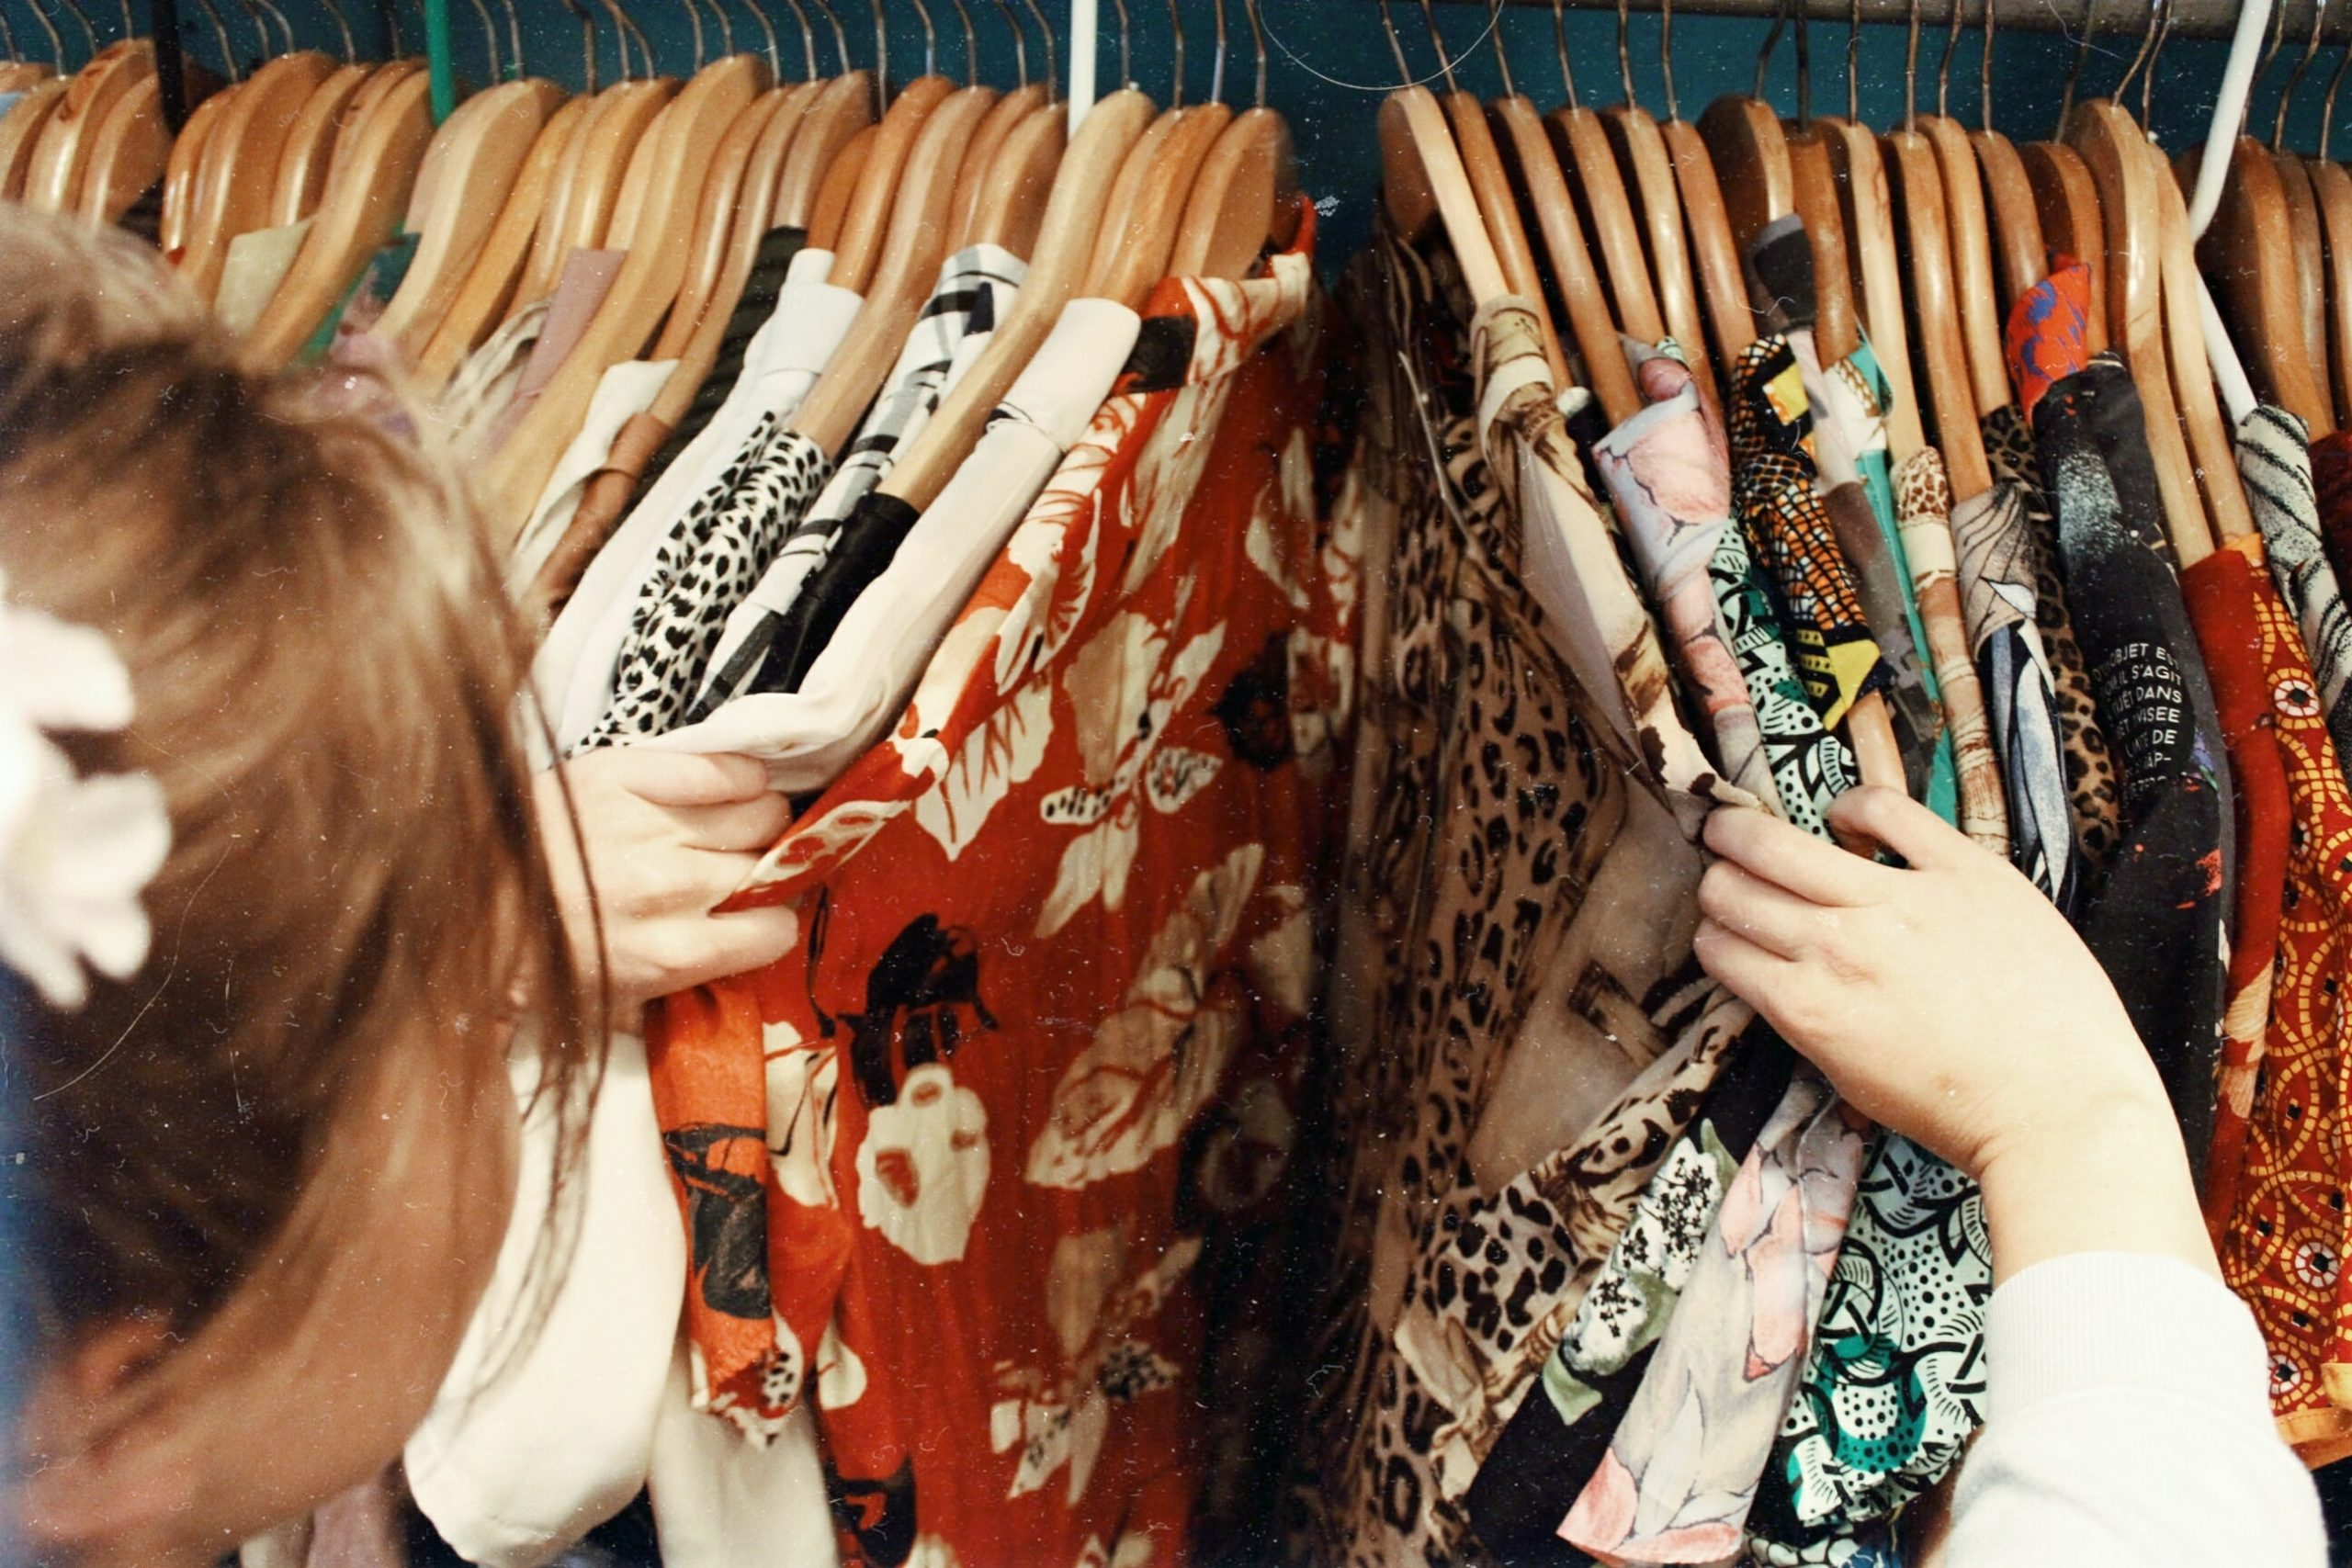 Girl searching through thrift store for article How To Thrift Like A Pro